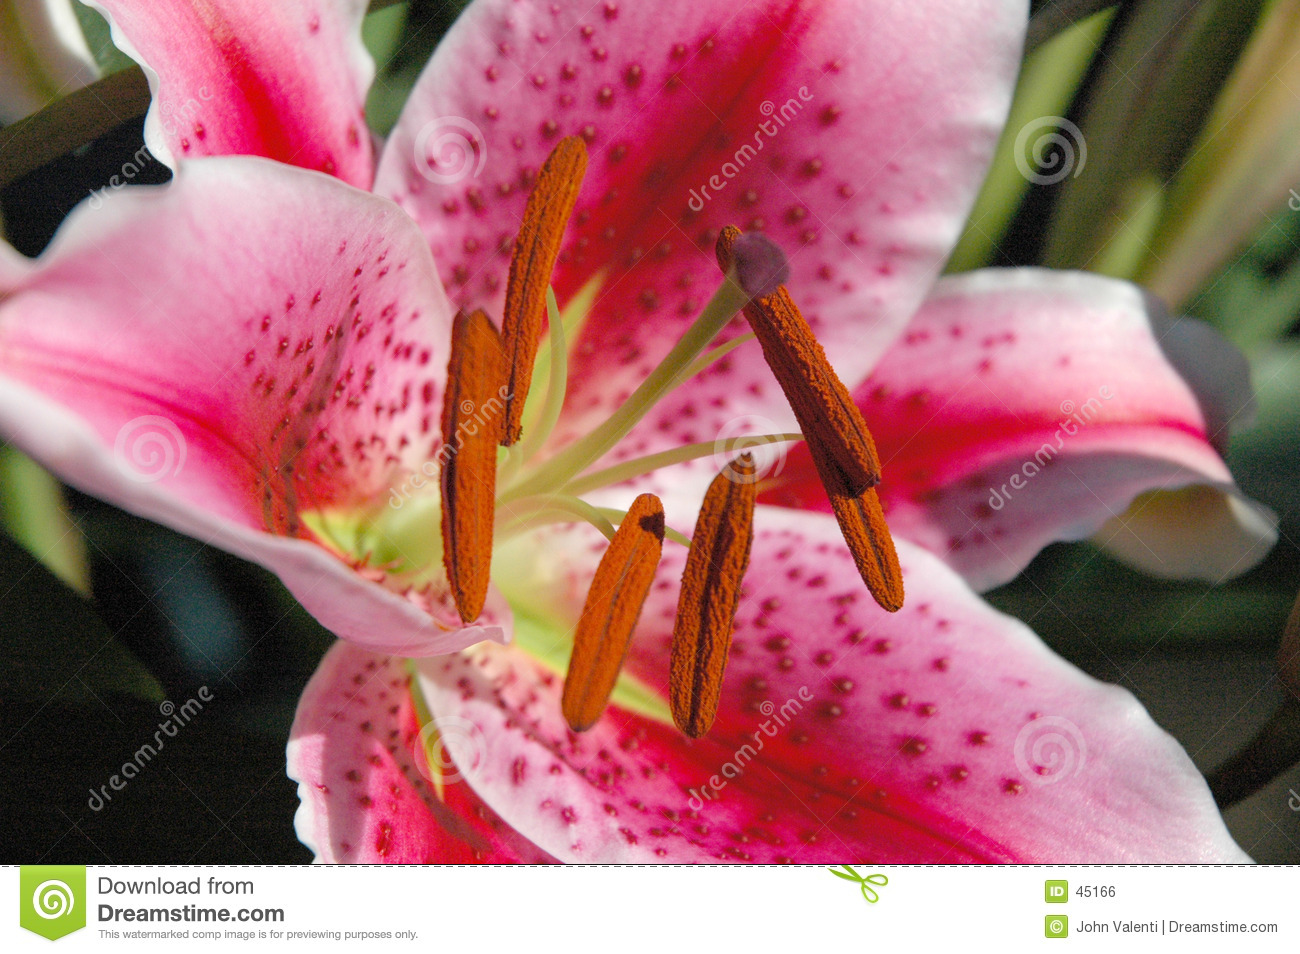 Giant Lilly Royalty Free Stock Image - Image: 45166